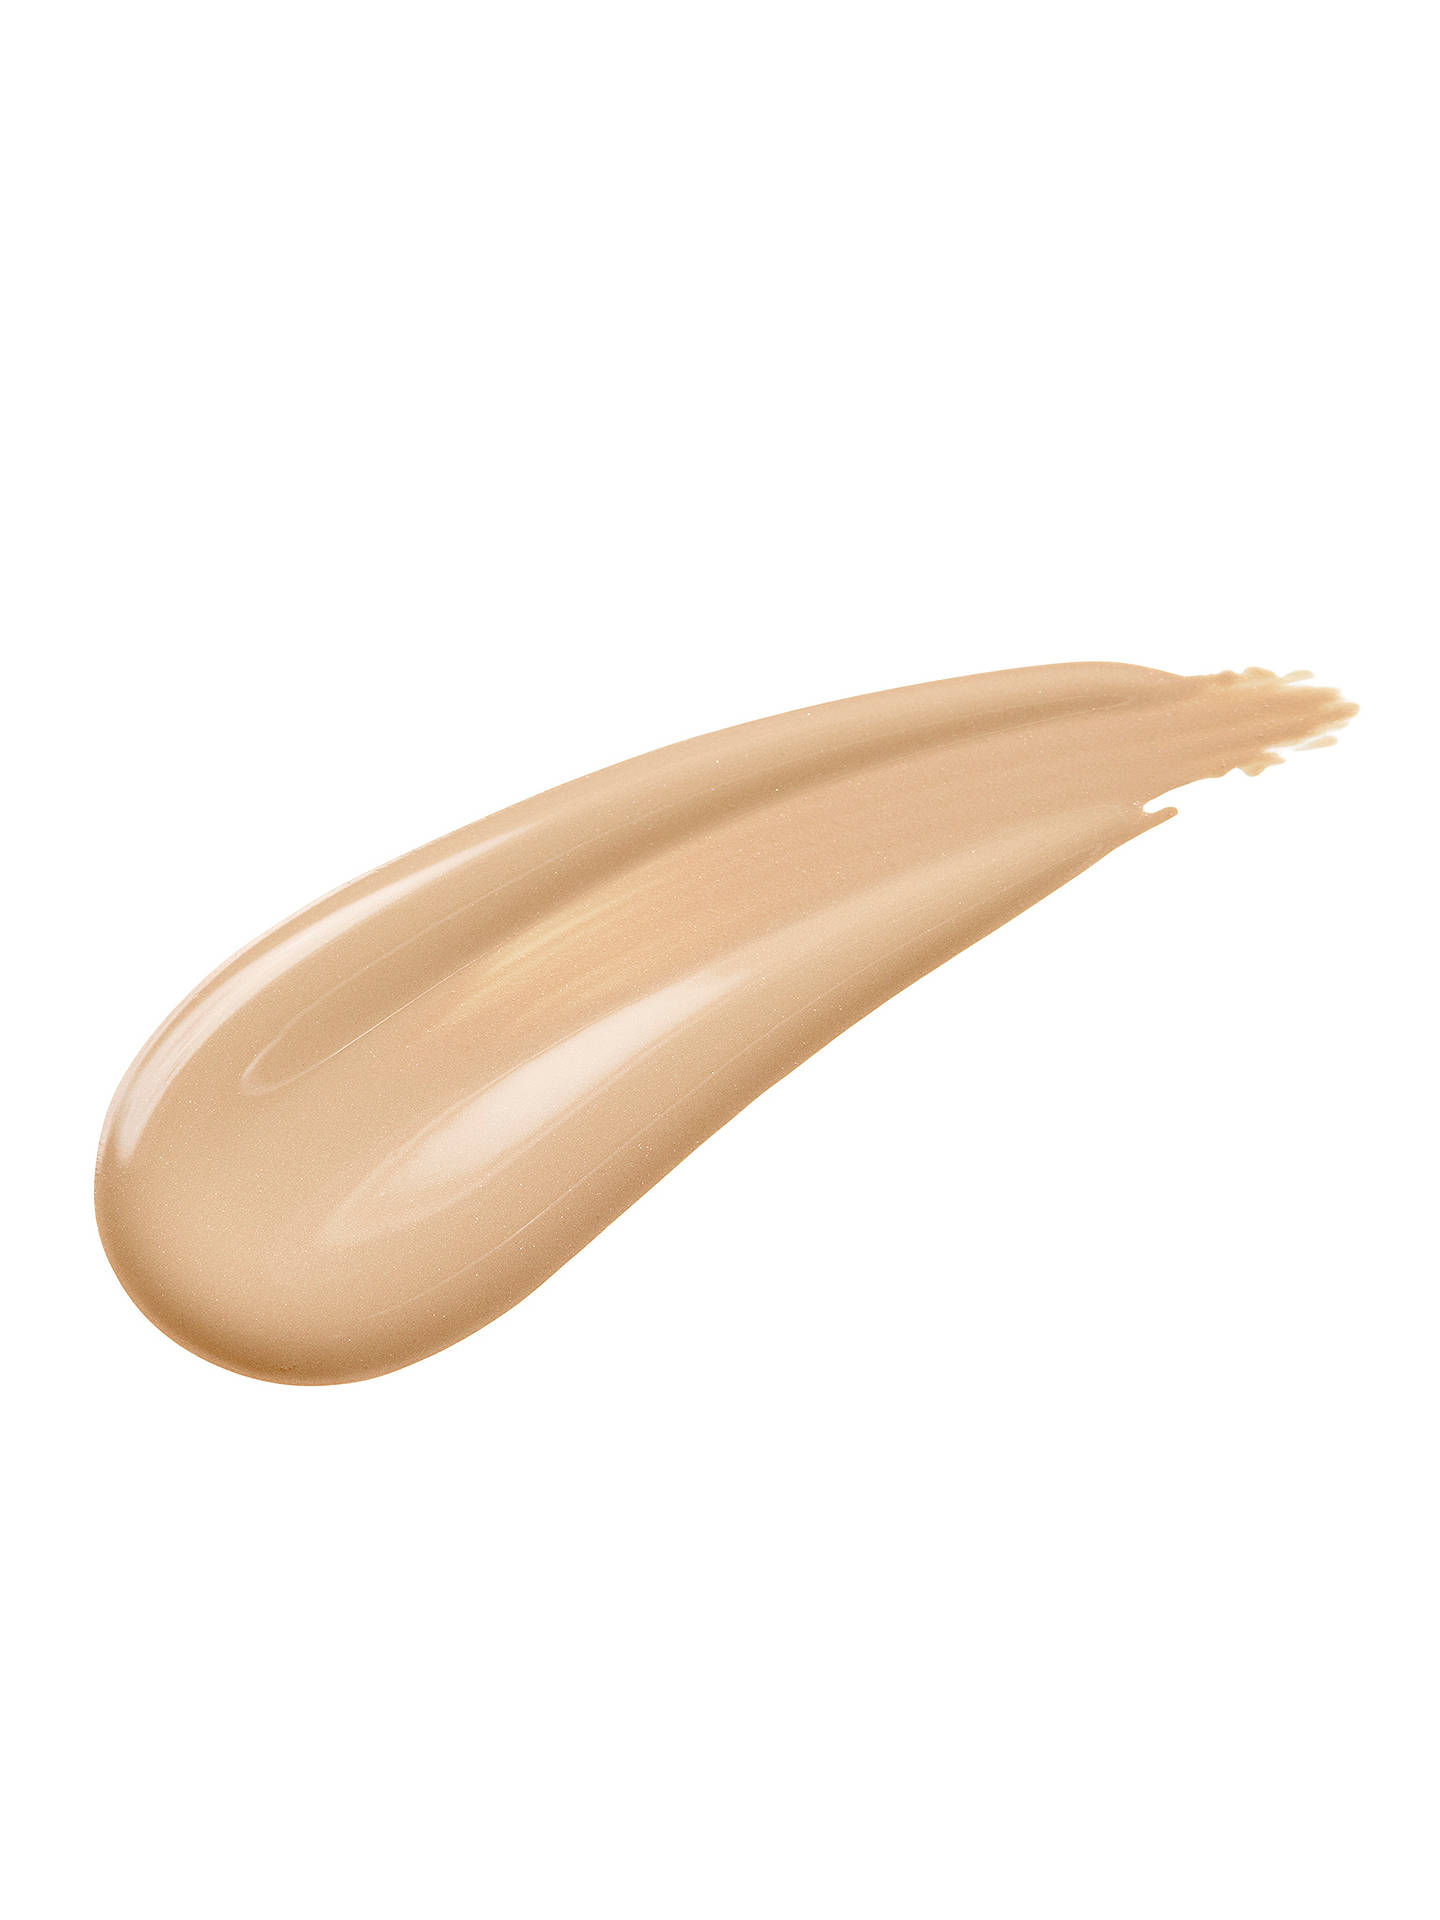 BuyShiseido Synchro Skin Glow Luminising Foundation, SPF 20, Golden 2 Online at johnlewis.com